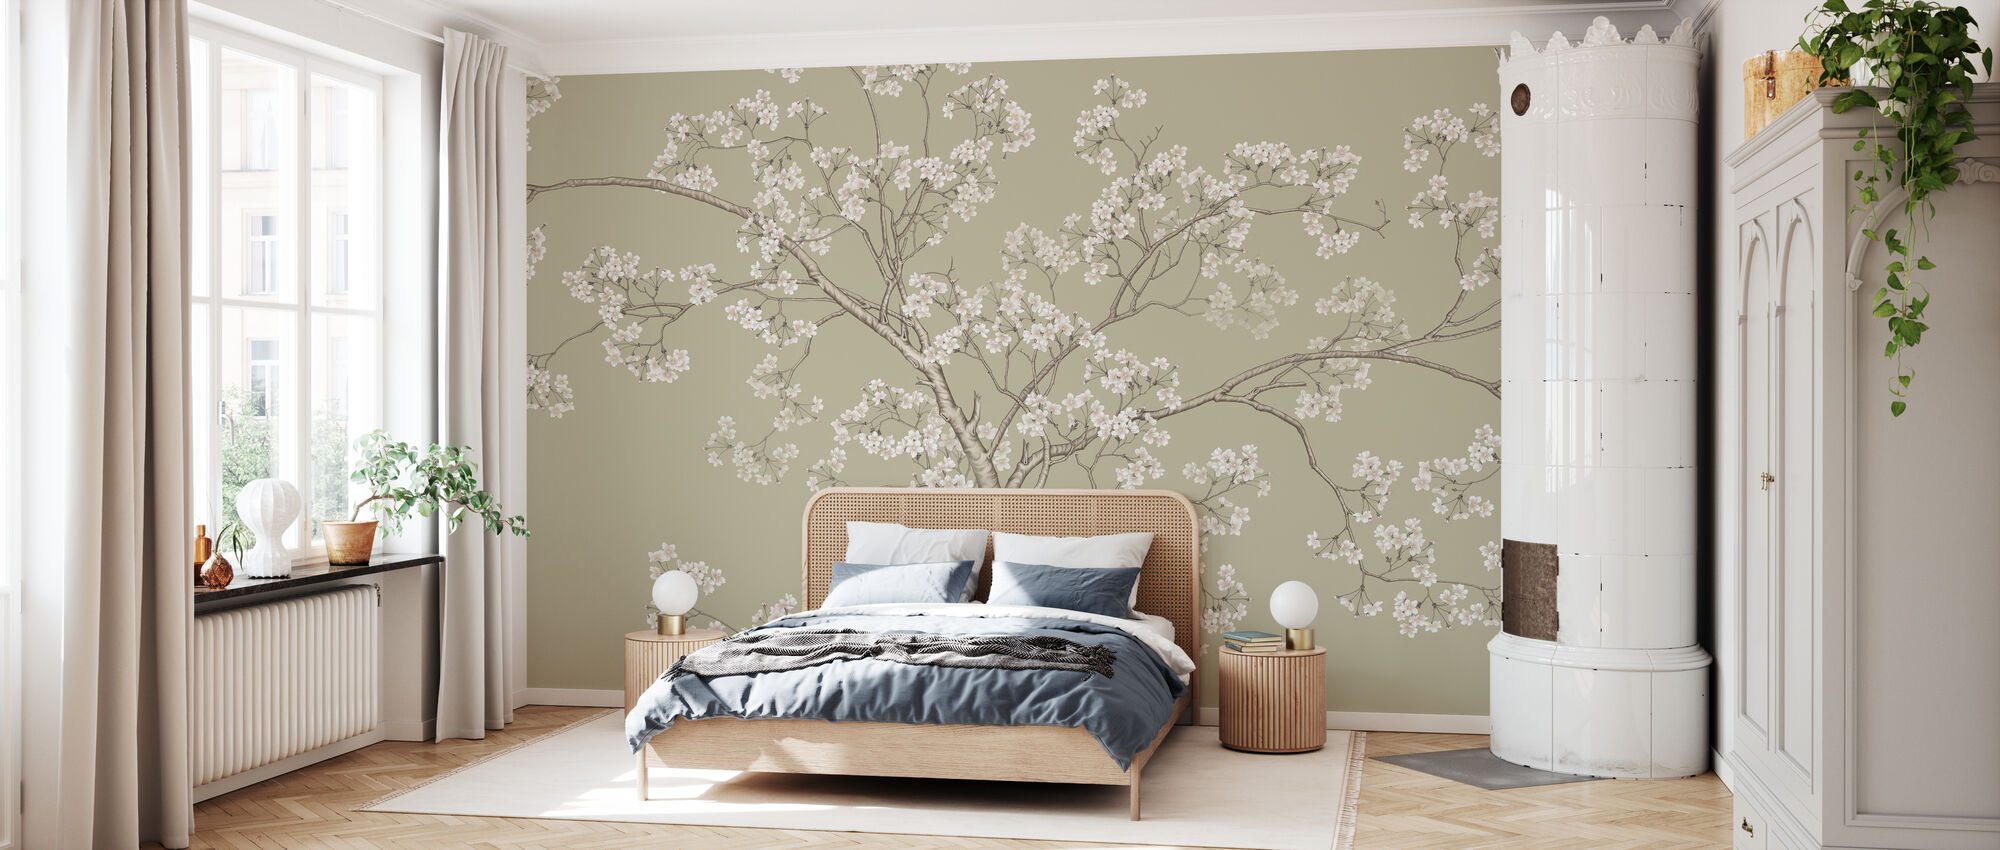 The Tree - Fawn - Wallpaper - Bedroom